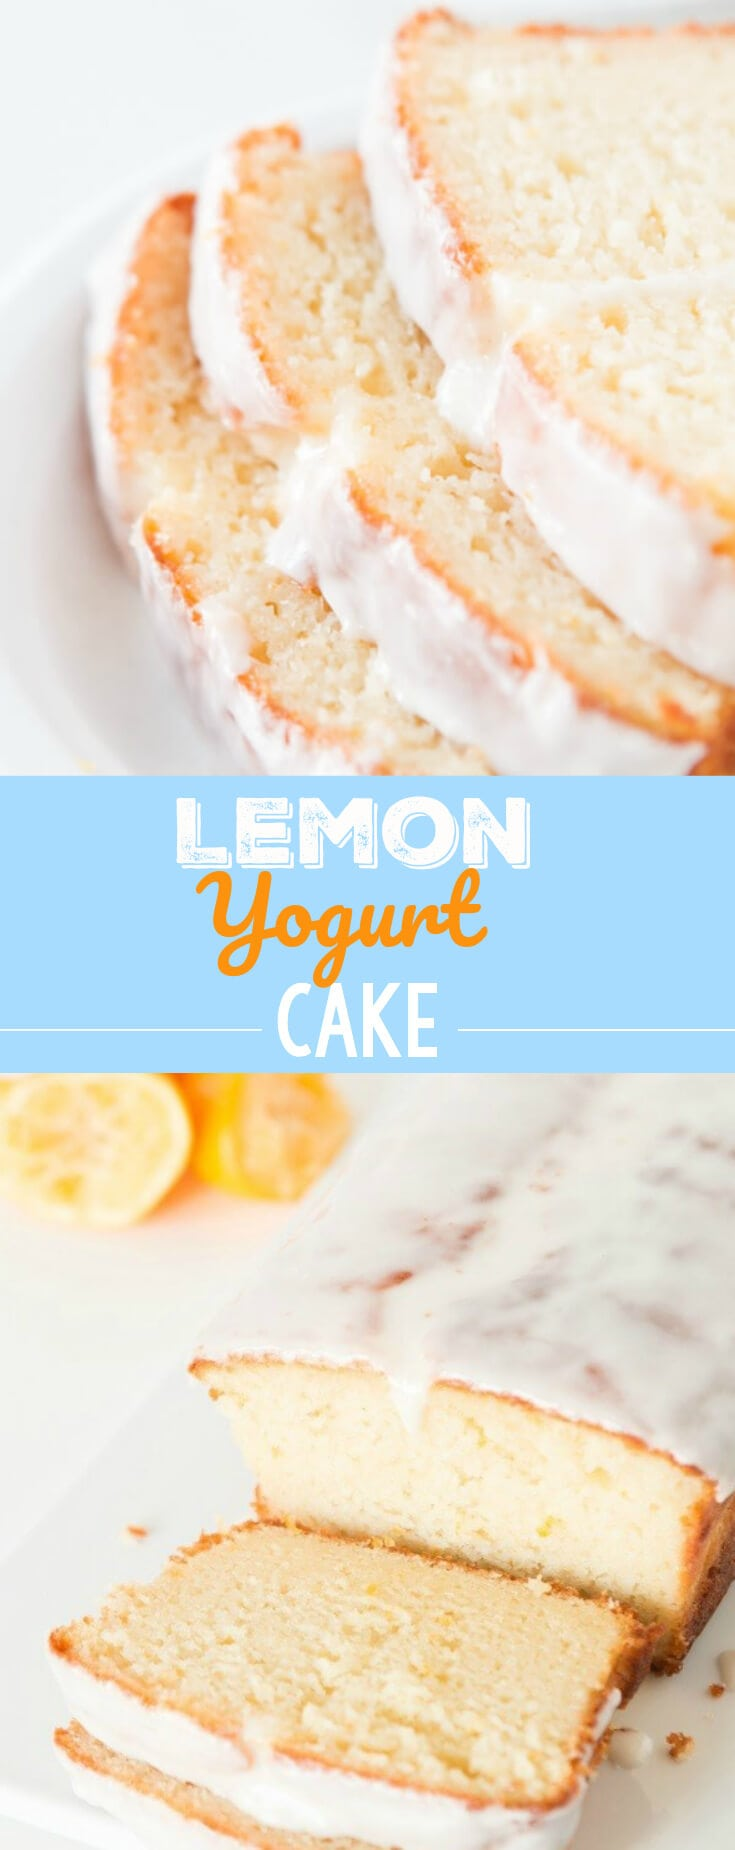 This Lemon Yogurt Cake is to die for! It has a super simple lemon syrup and delicious glaze. You'll want to eat the whole loaf!